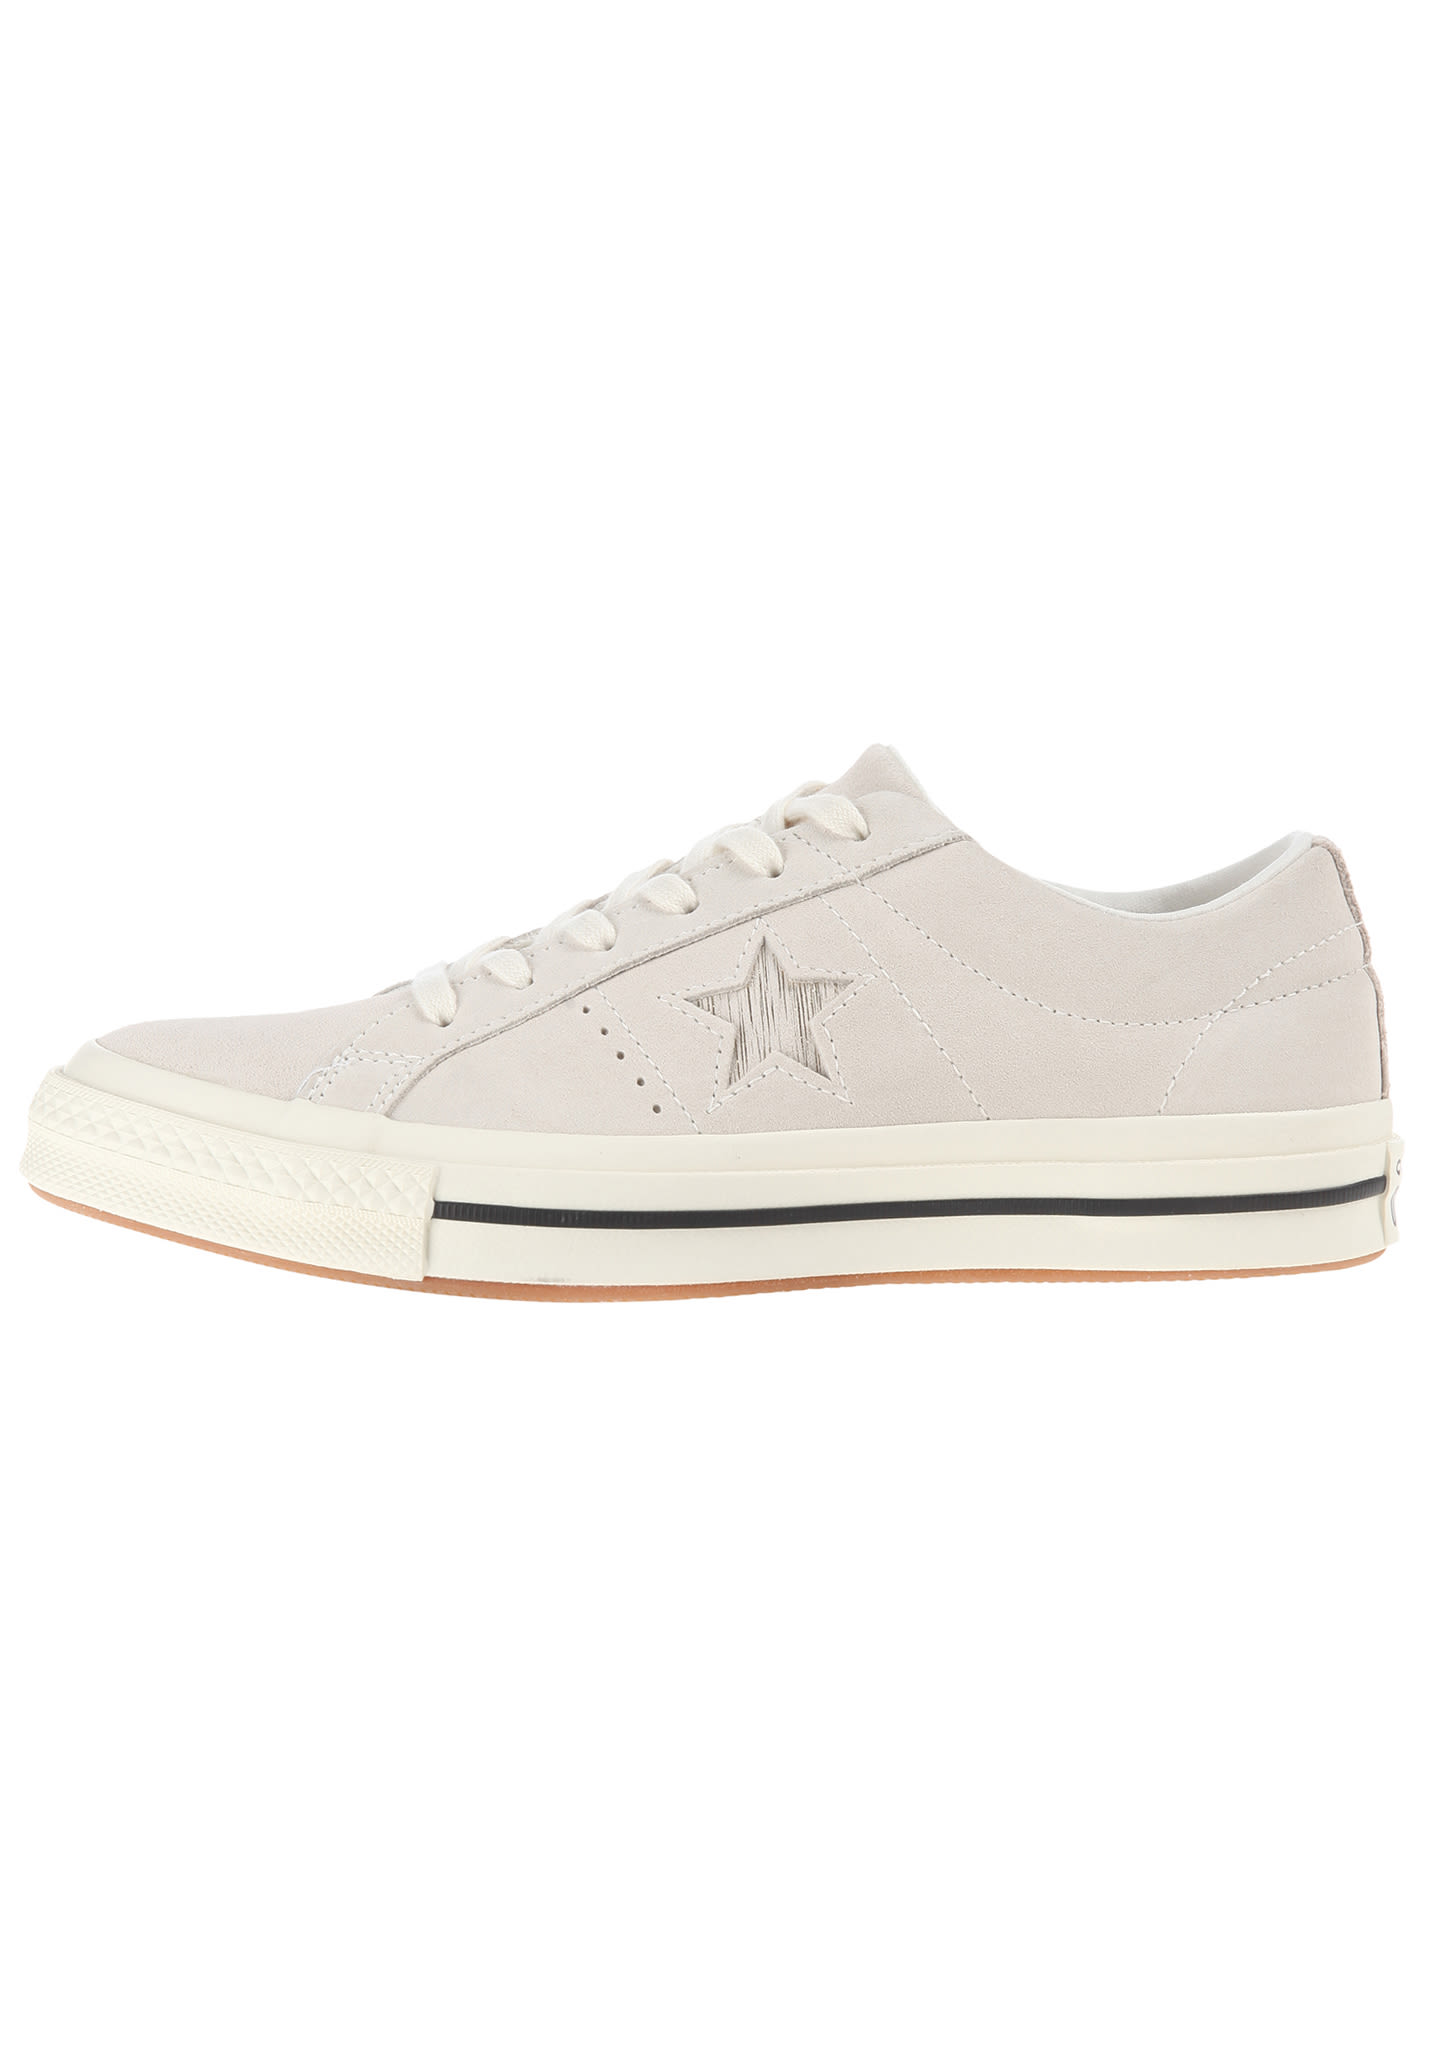 converse one star beige